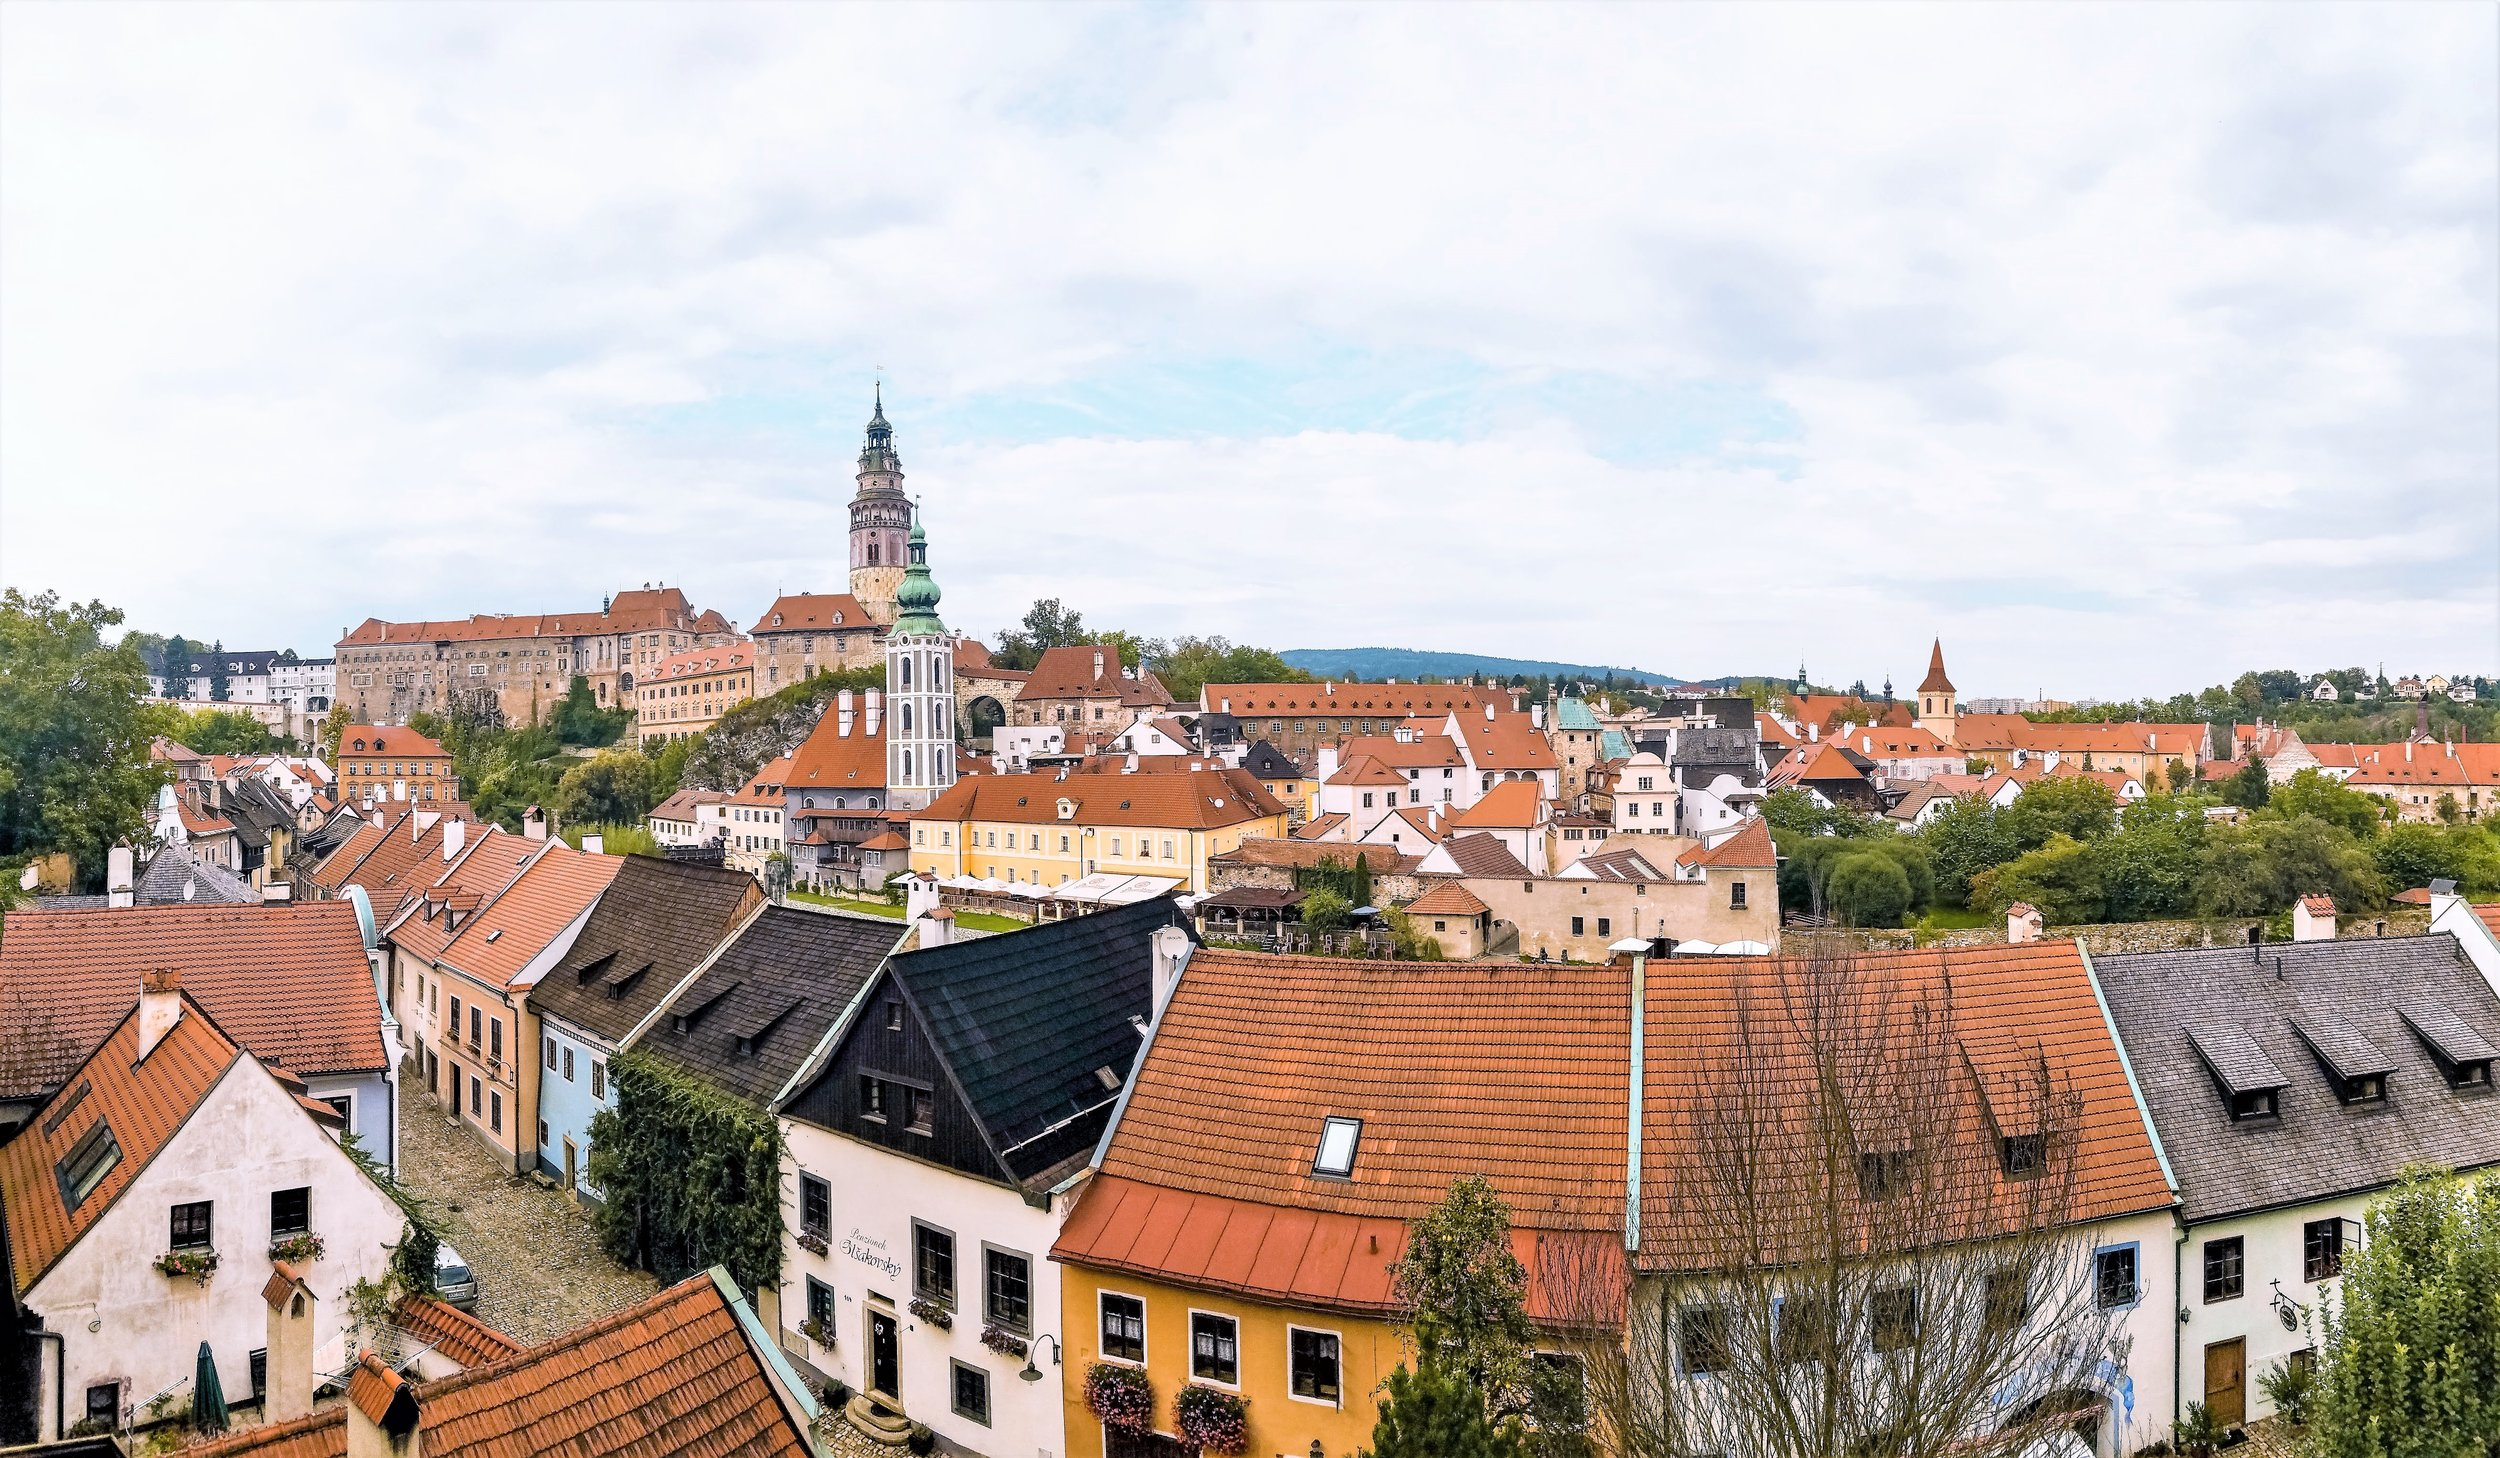 Downtown Cesky Krumlov is full of old buildings with Baroque and Renaissance designs.